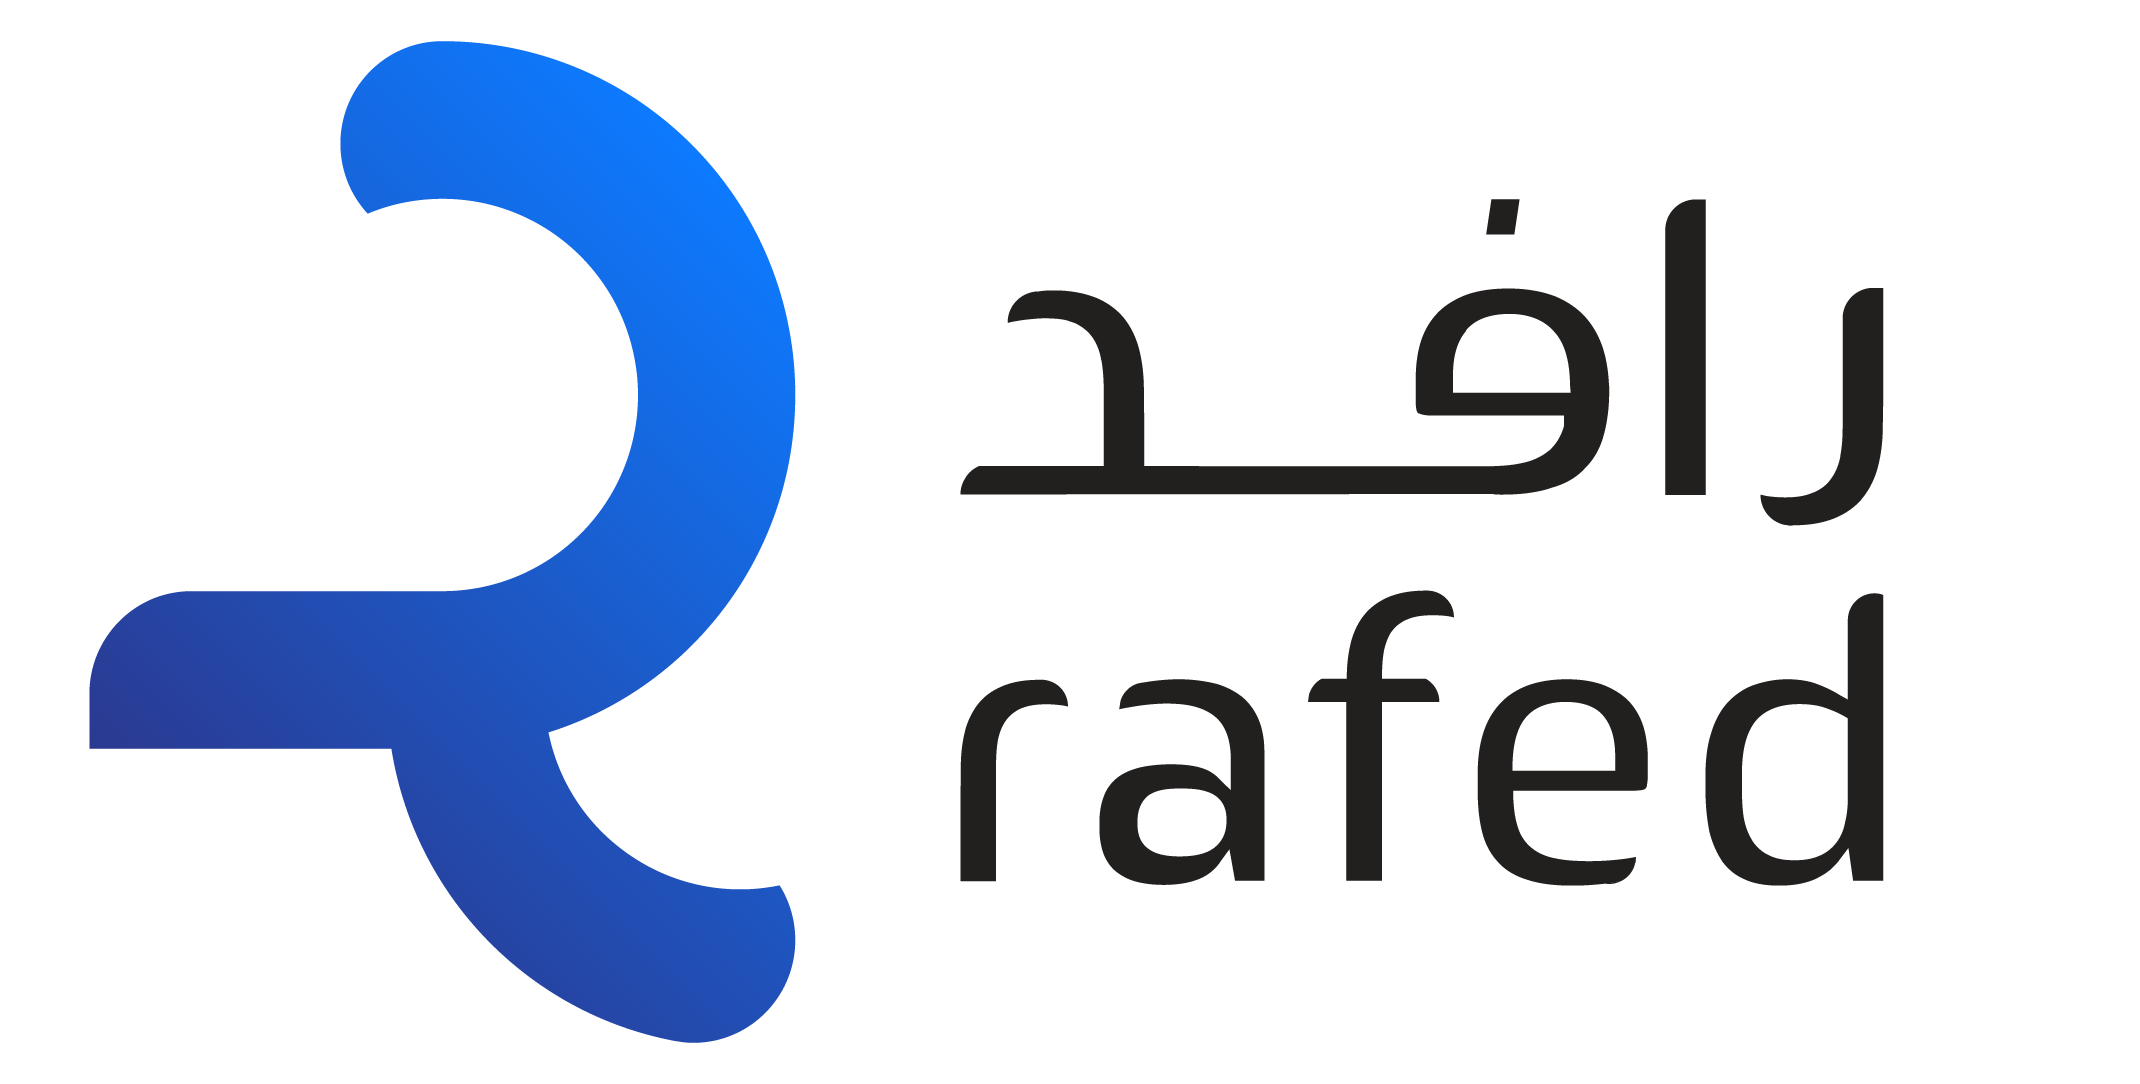 مجموعة رافد Rafed Group